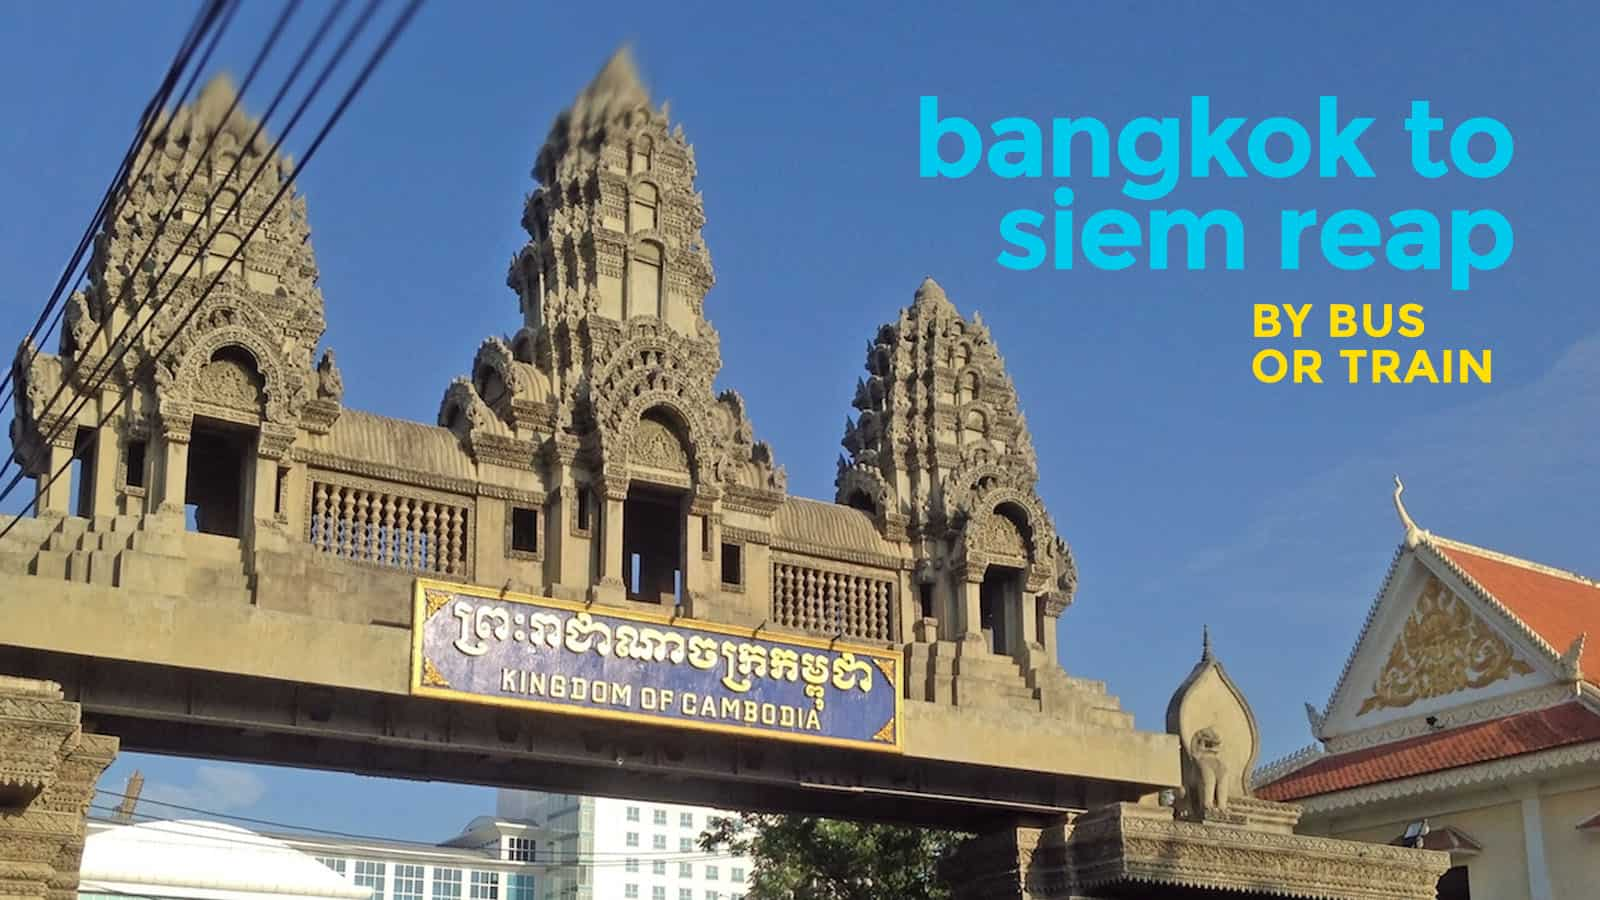 Bangkok To Siem Reap By Land Crossing The Border The